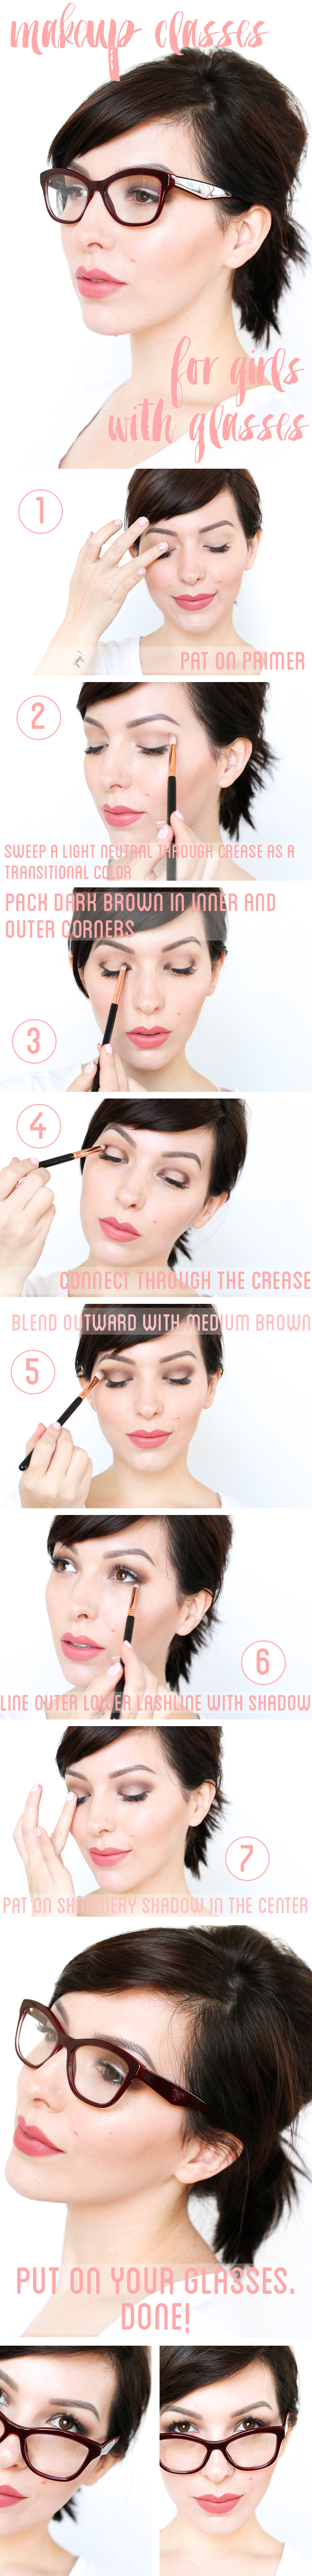 makeup tutorial for girls with glasses